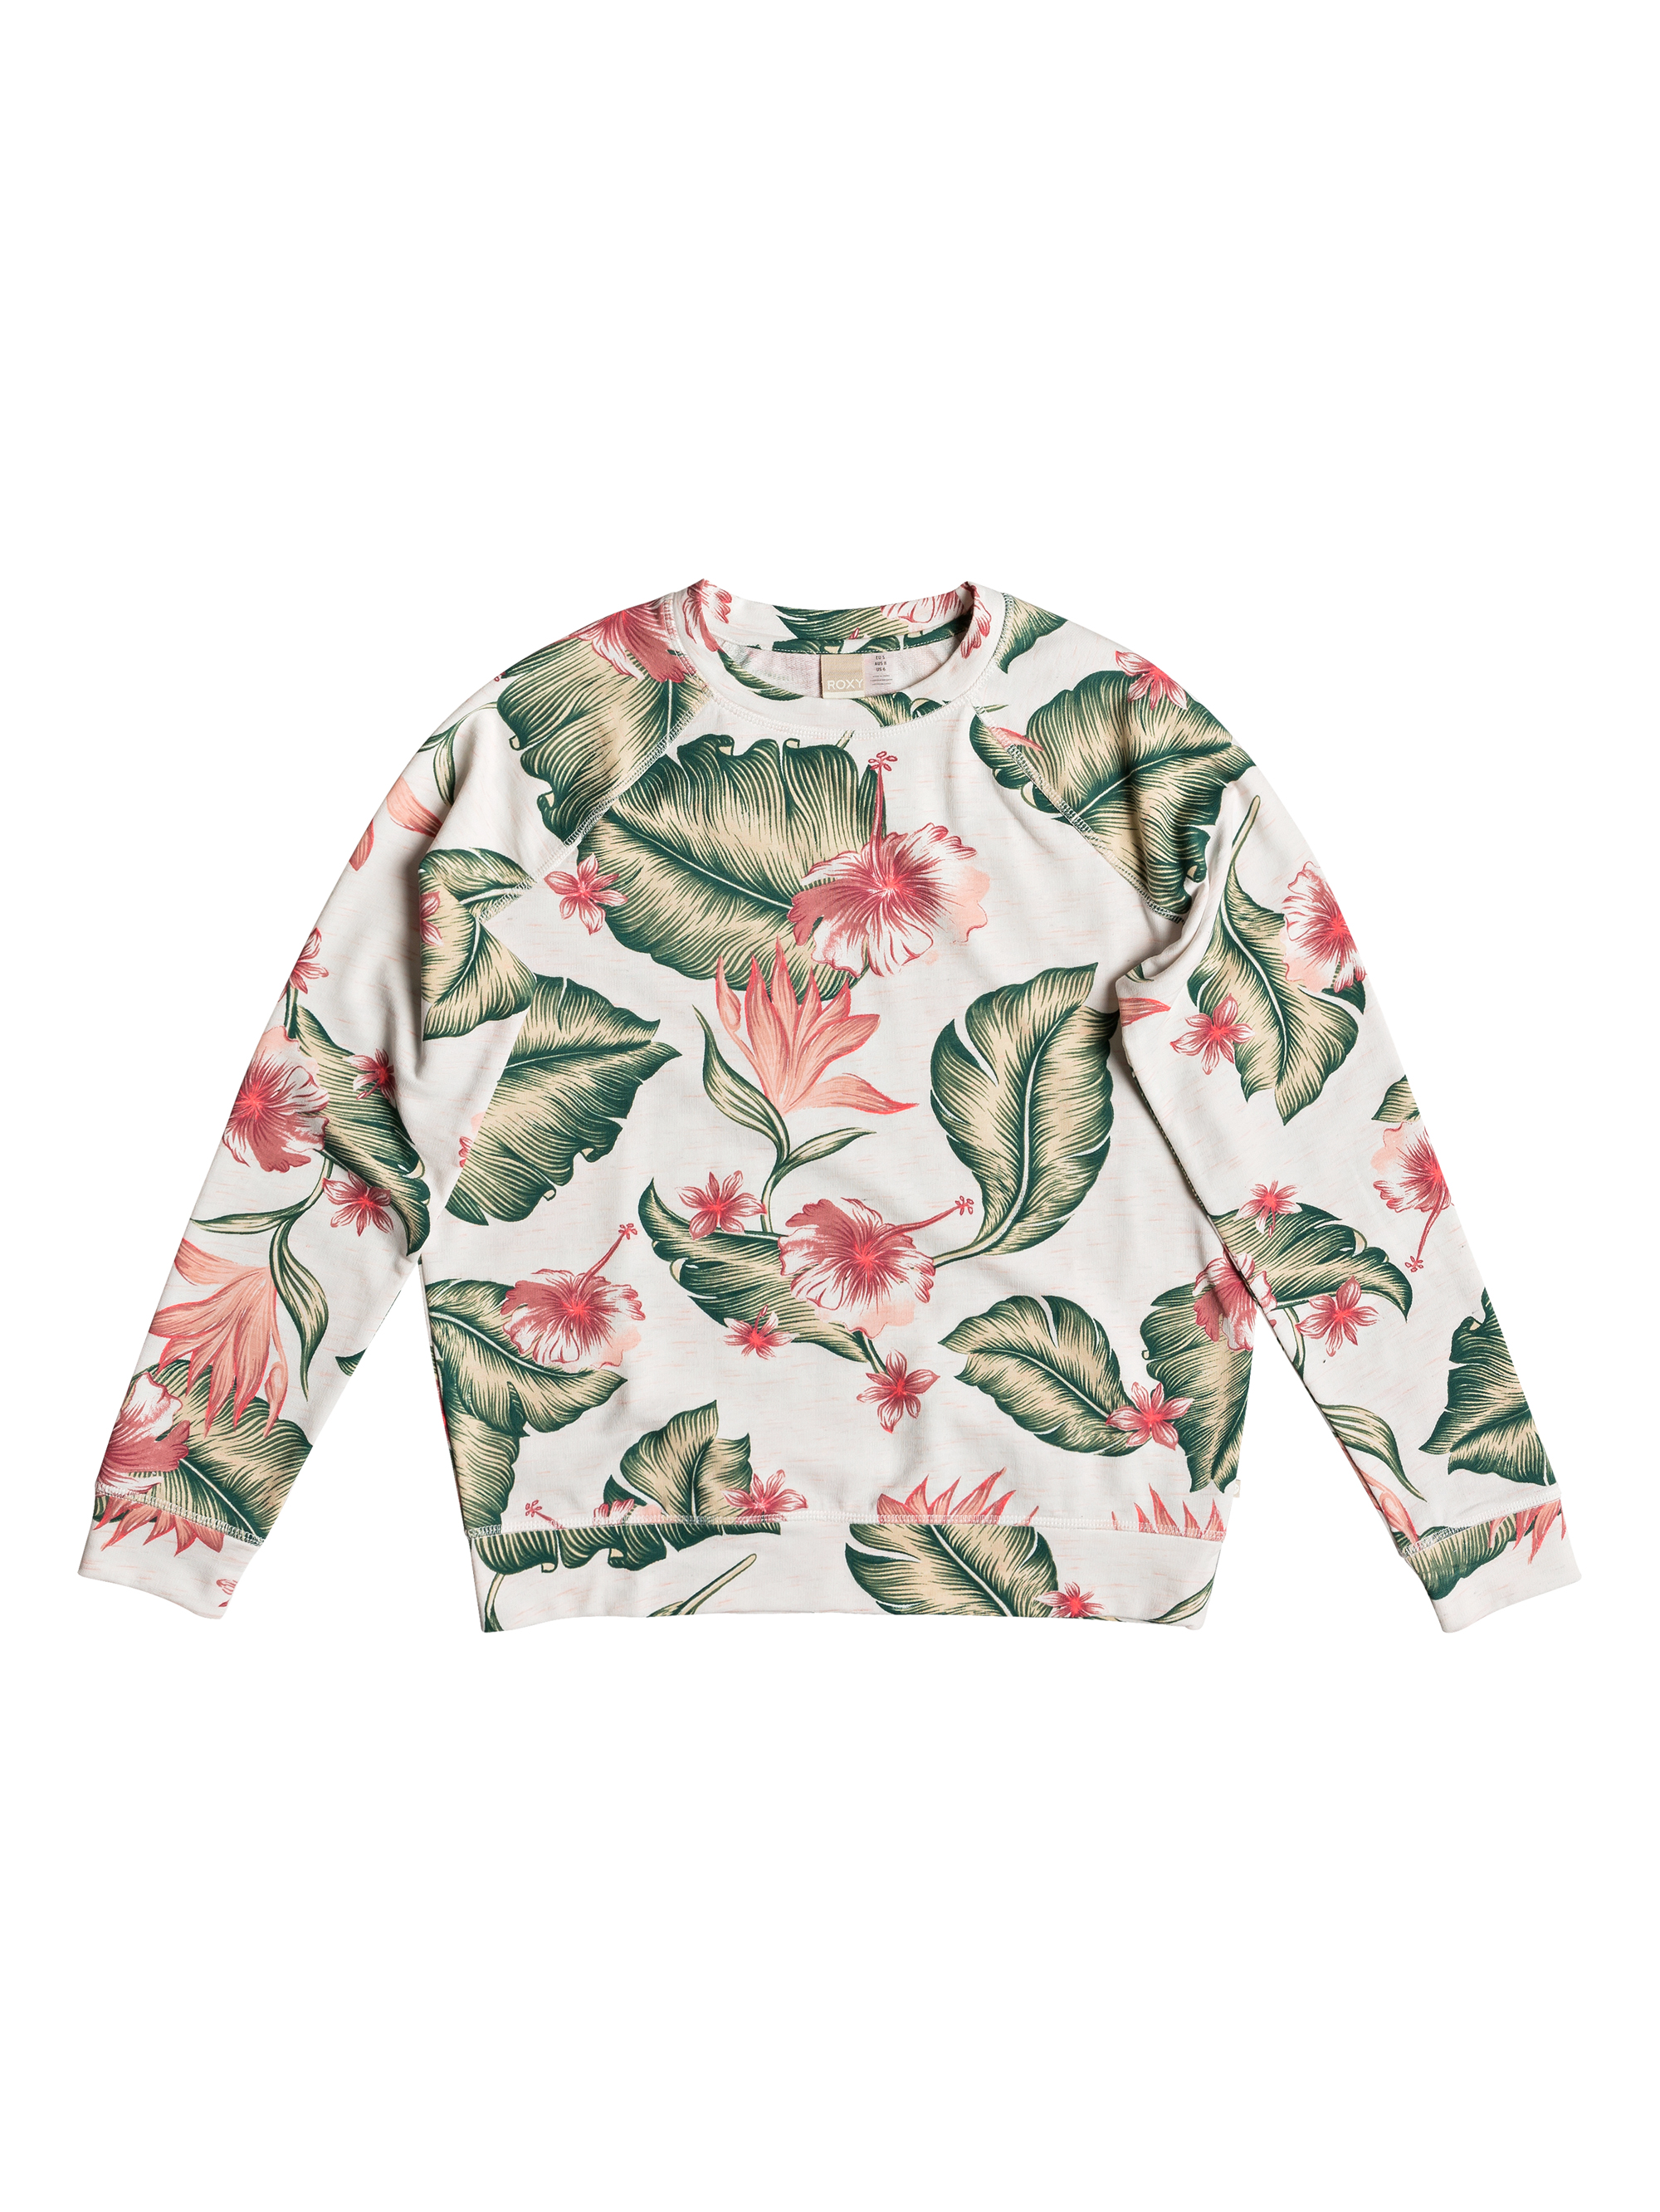 9697507b79 ... mikina GIRLS OF SUMMER Marshmallow Tropical Love. Značka  ROXY. €55